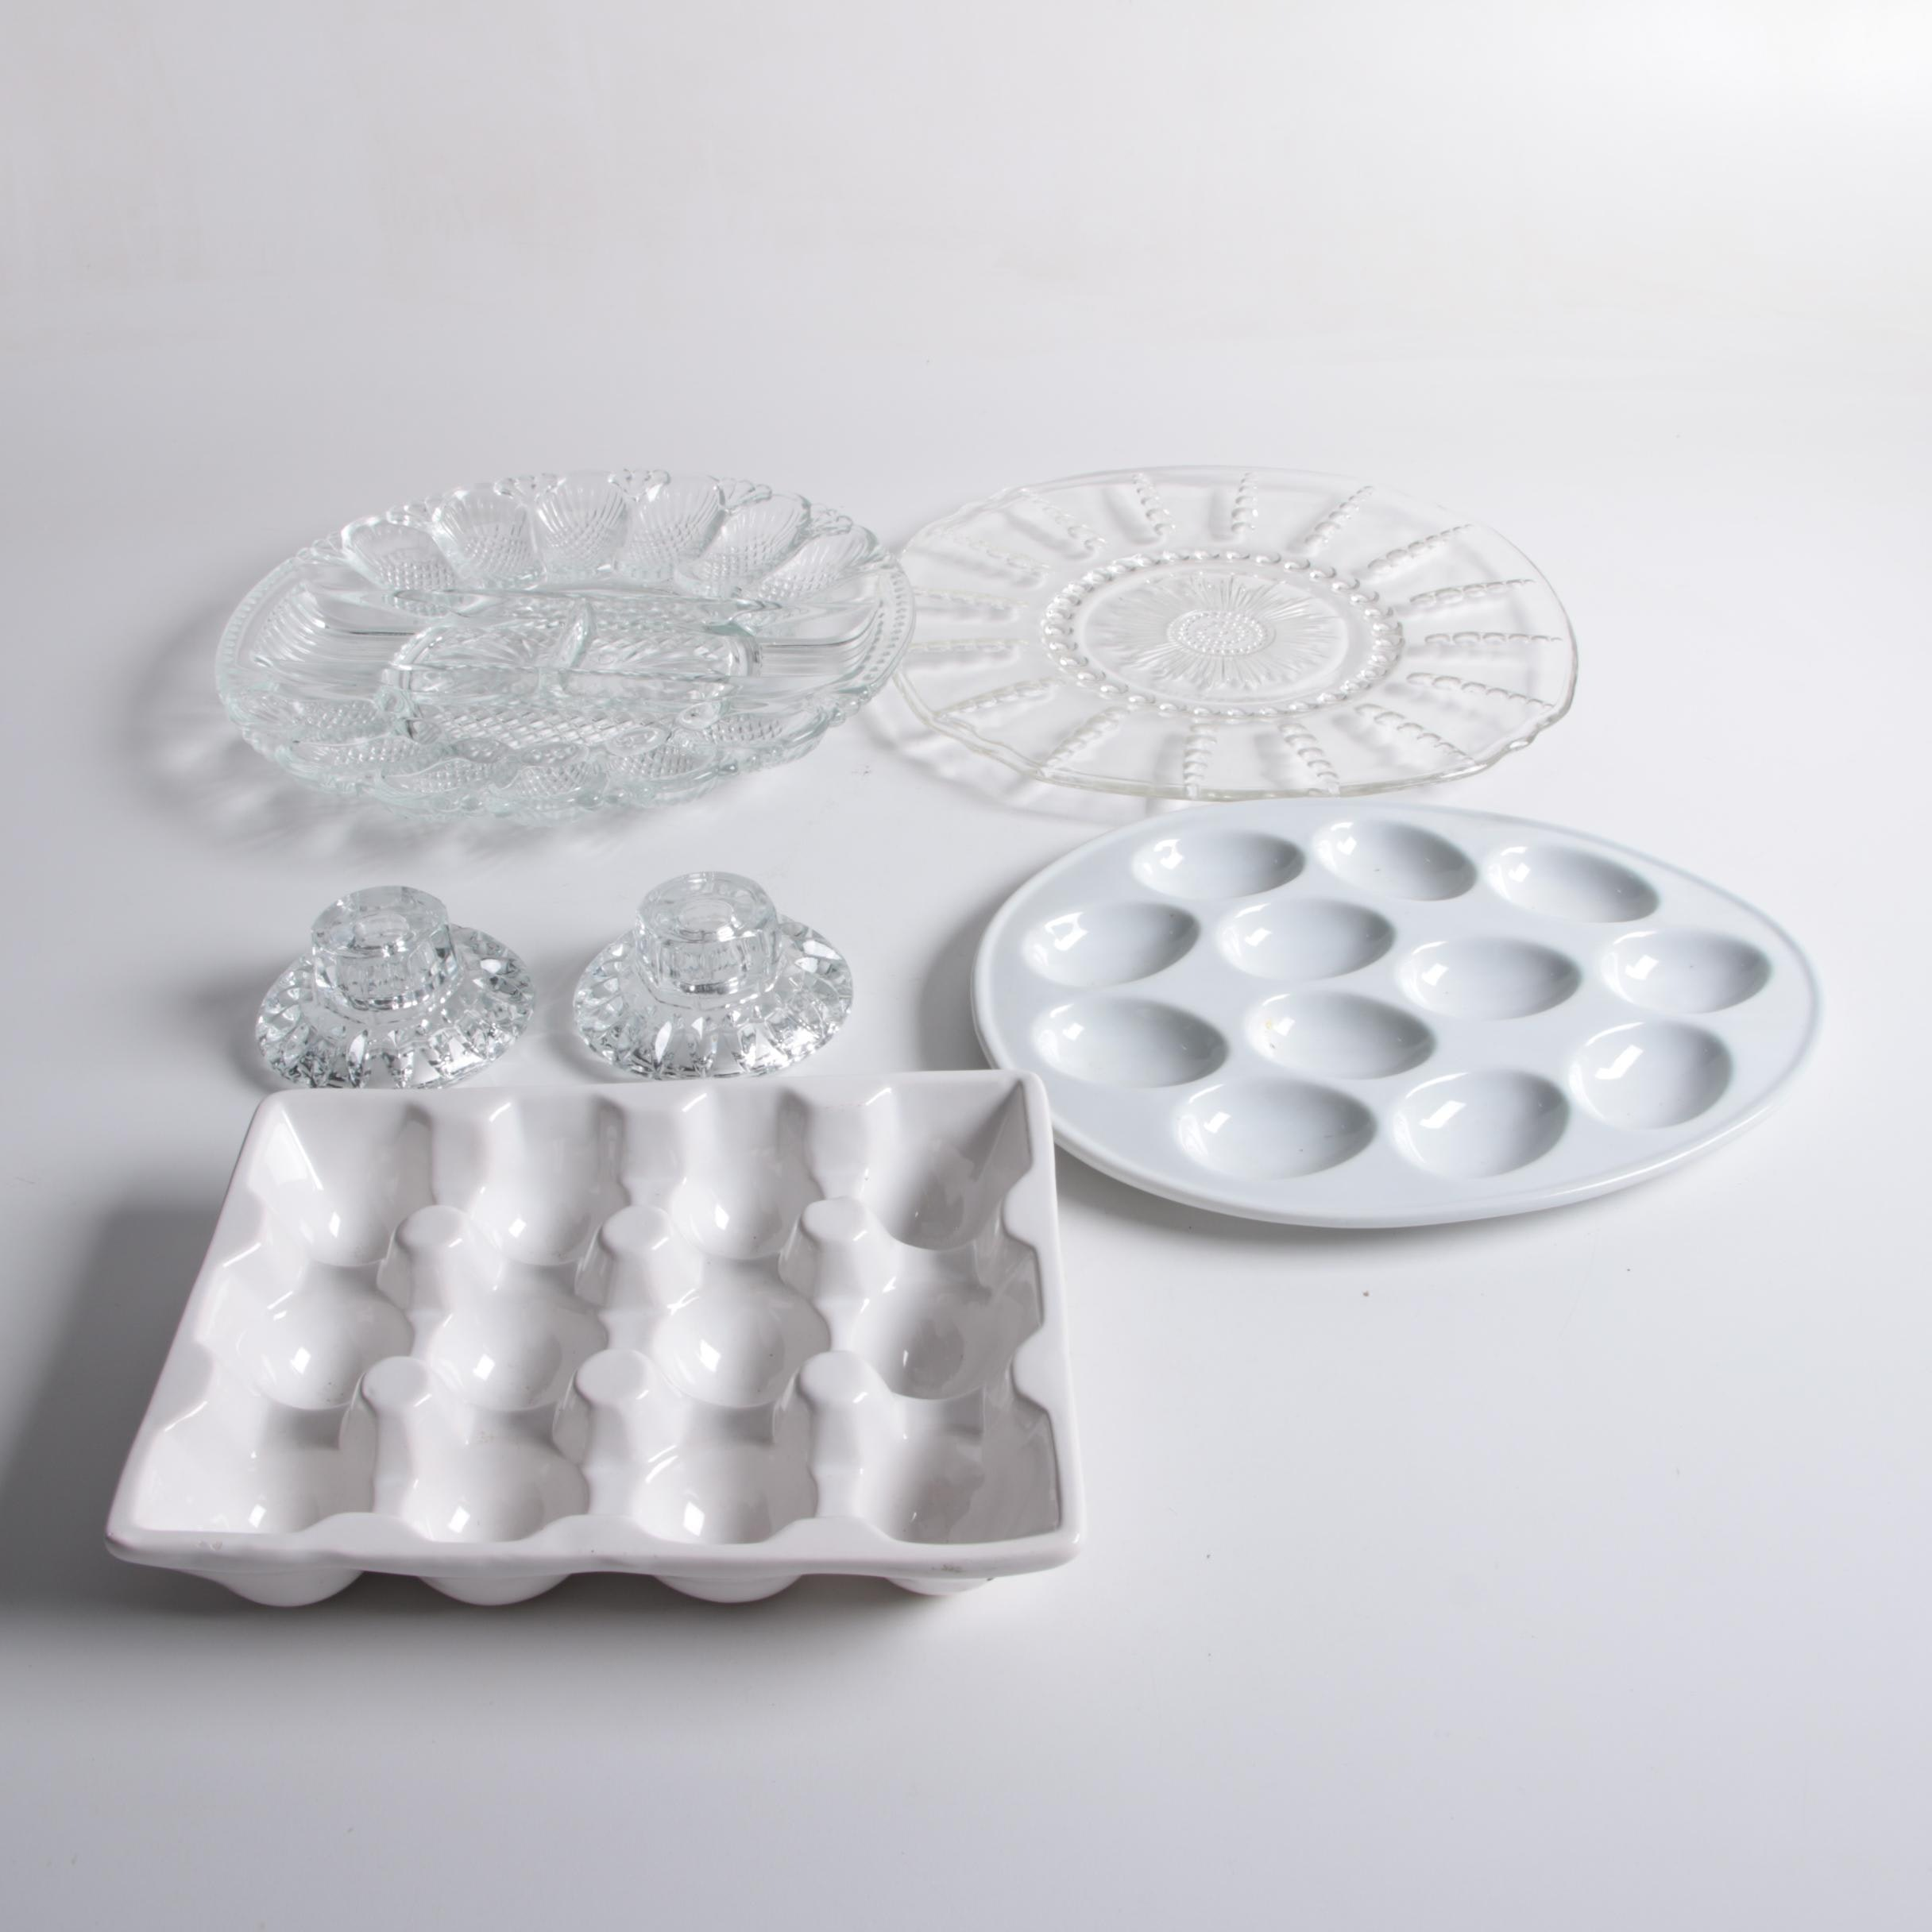 Glass and Ceramic Tableware and Decor